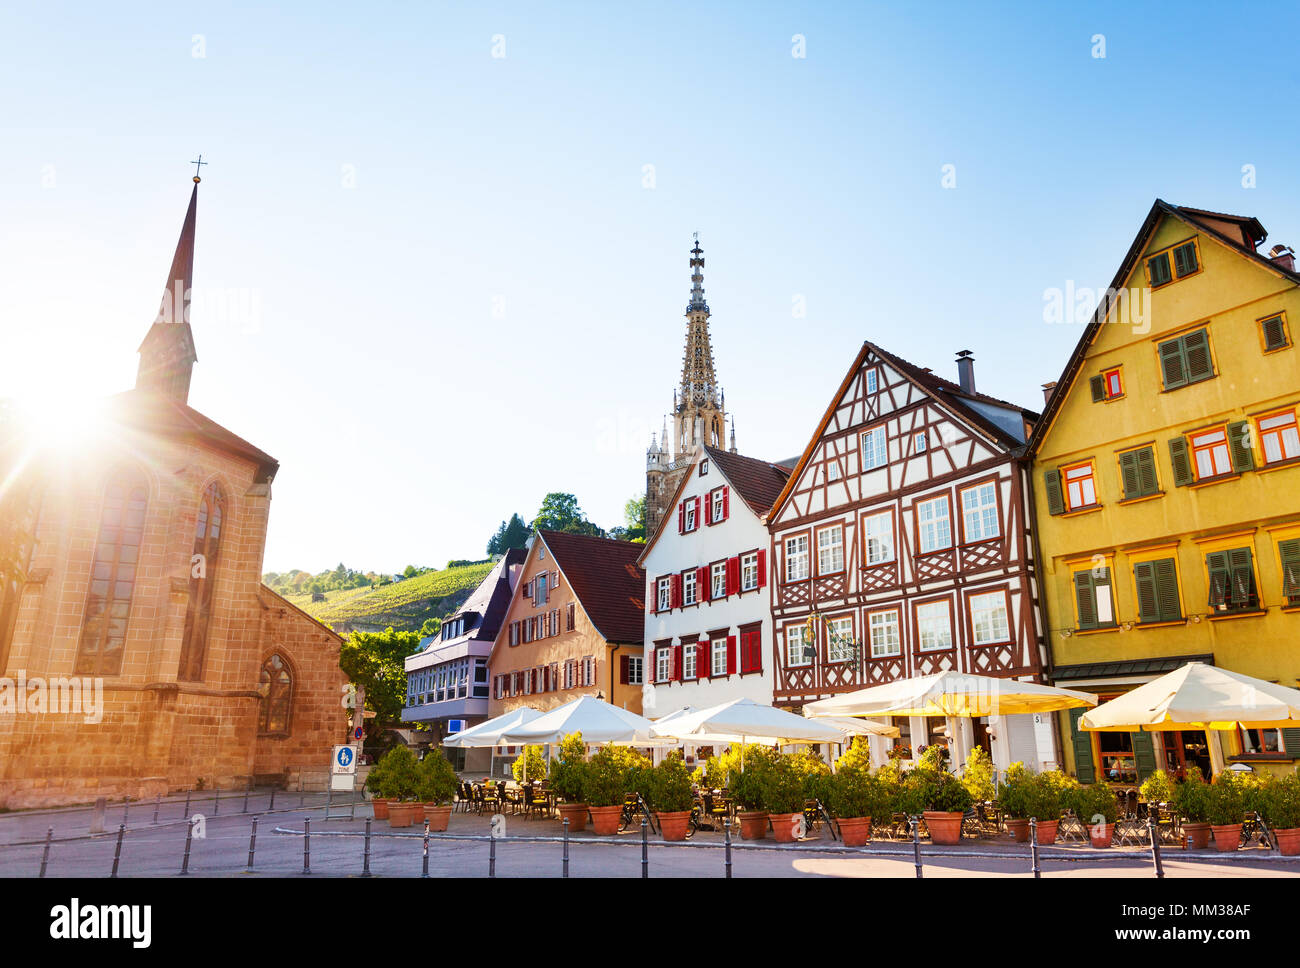 Market Square of Esslingen and spire of Church of Our Lady Frauenkirche in the distance, Germany, Europe - Stock Image